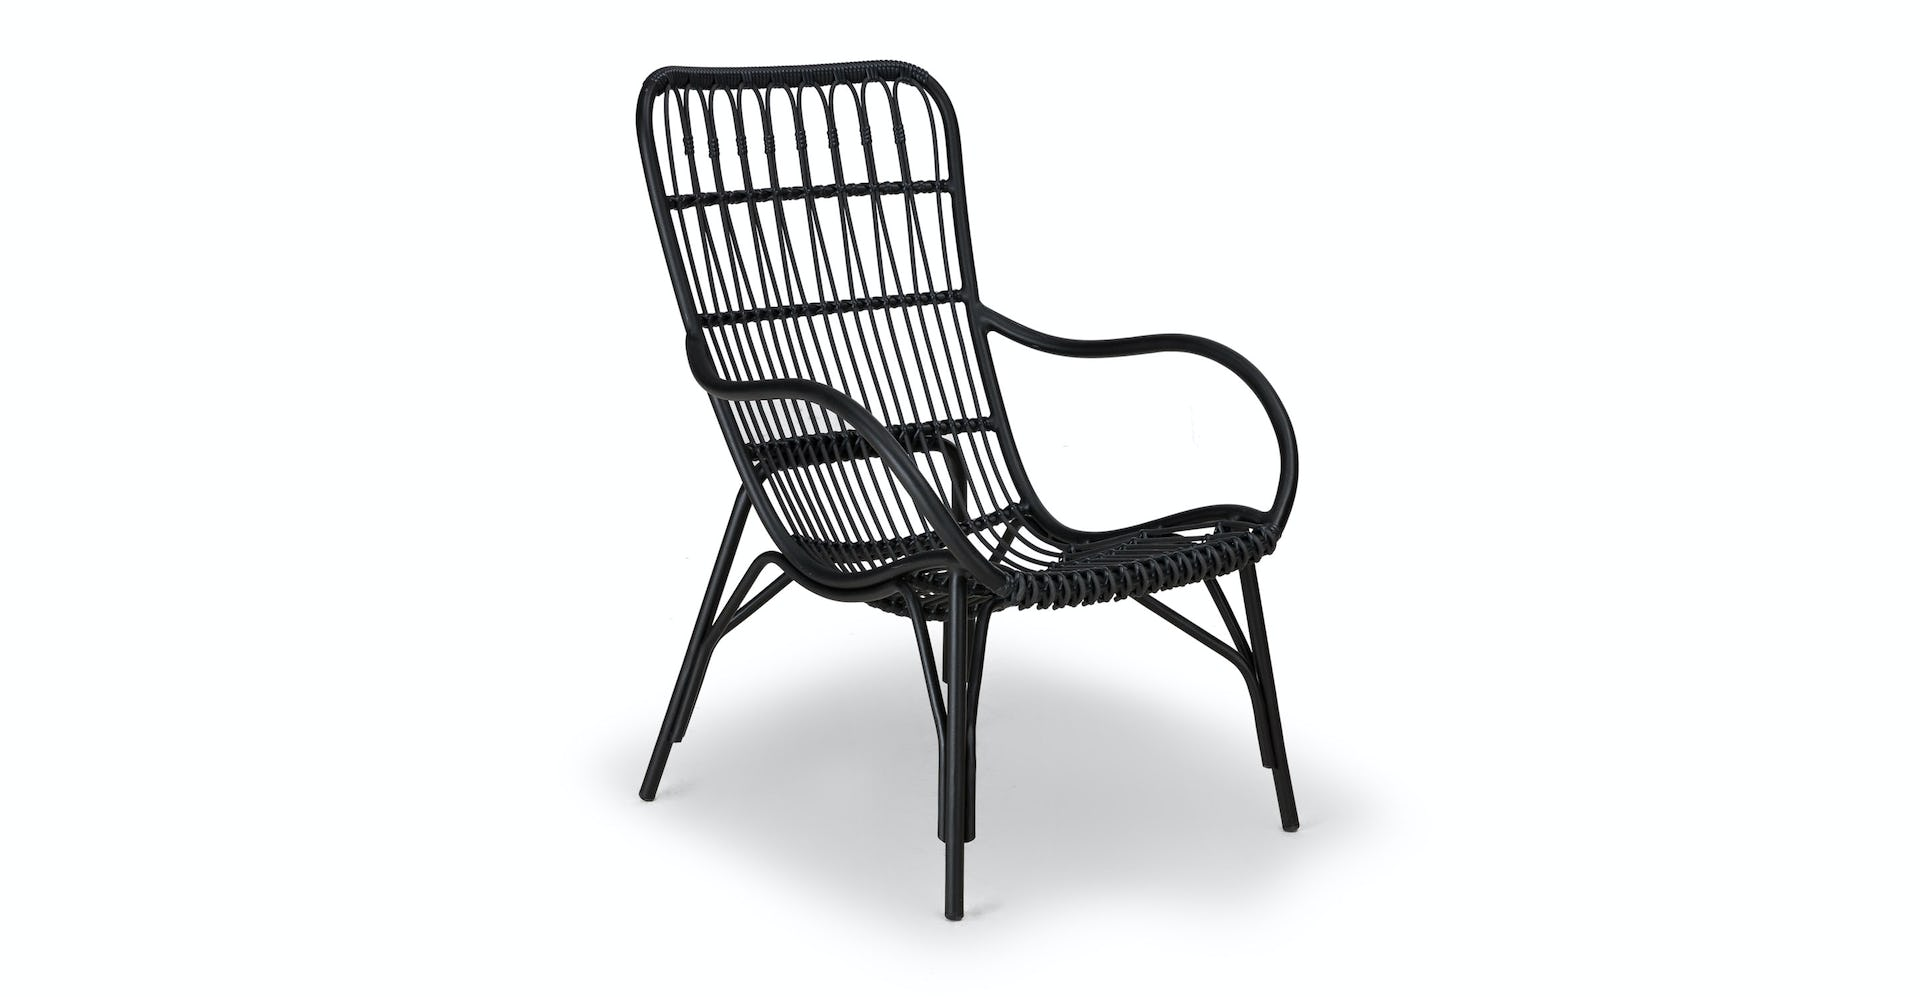 Astounding Medan Graphite Lounge Chair Inzonedesignstudio Interior Chair Design Inzonedesignstudiocom